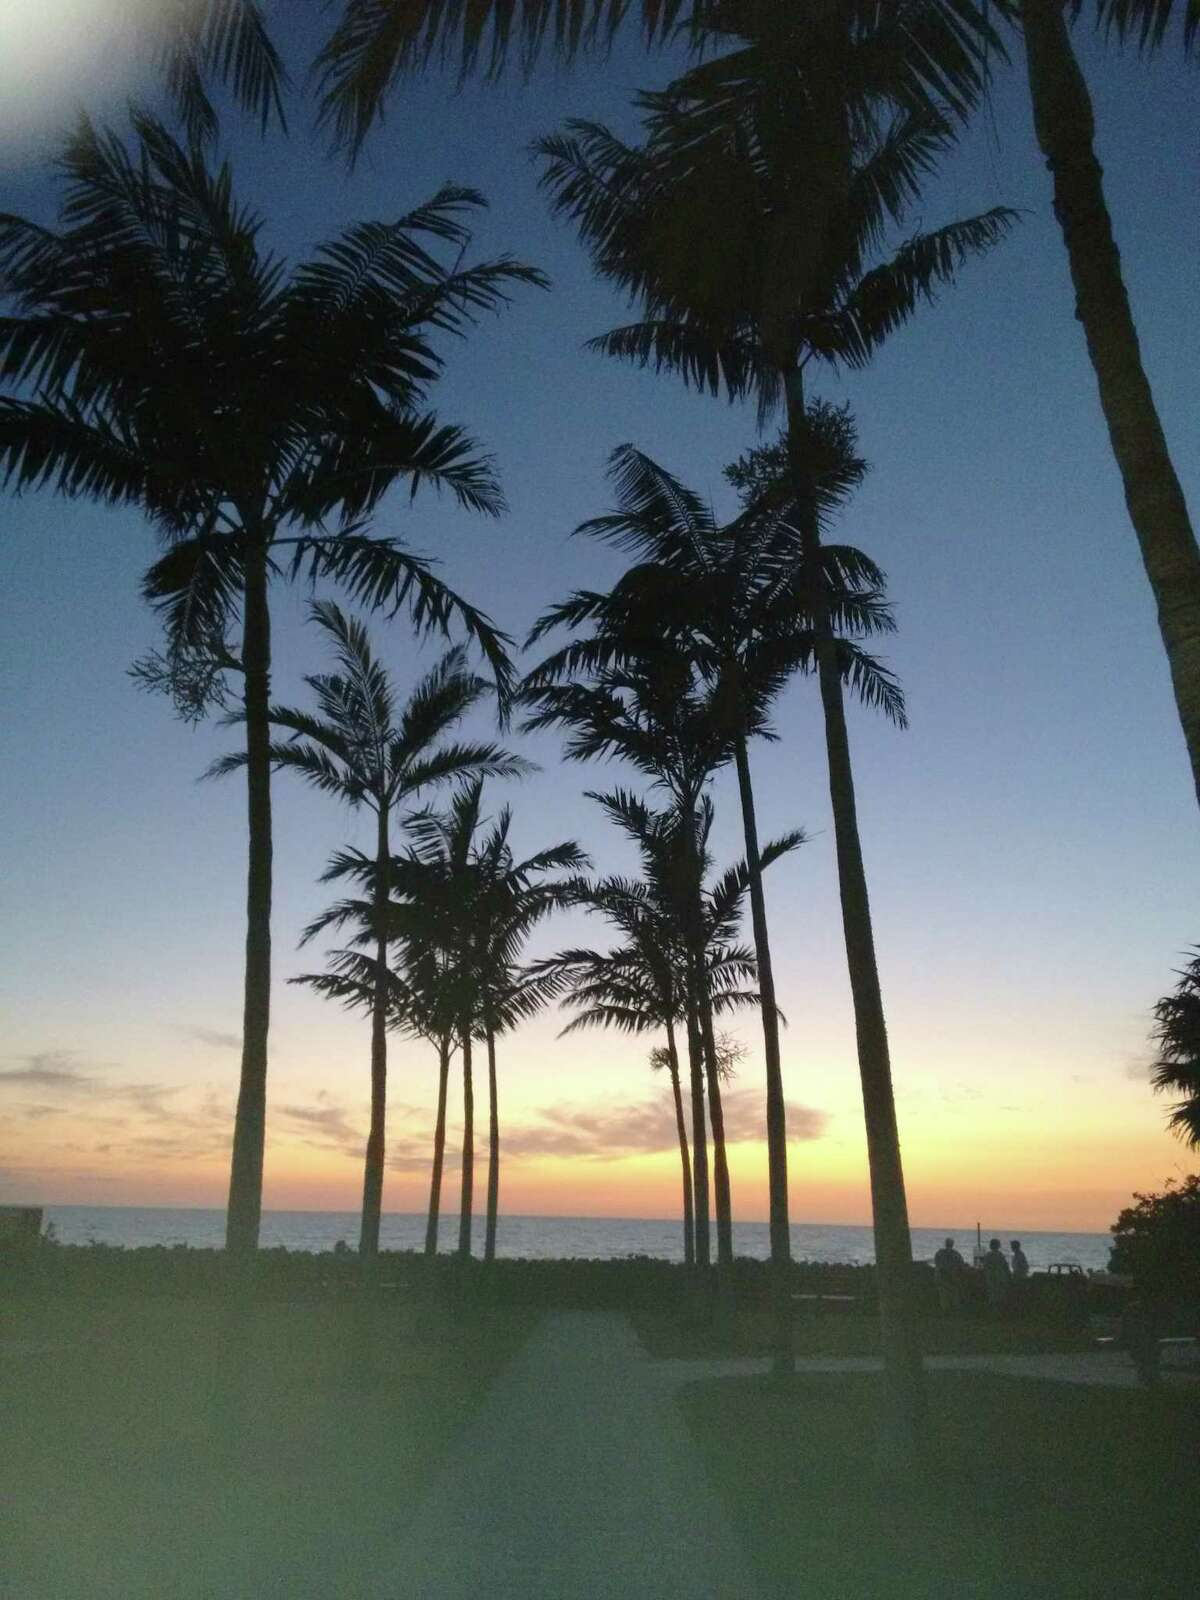 """Lori Keegan-Brady visited Naples Fla. """"We love the palm trees silhouetted by the sunset."""""""